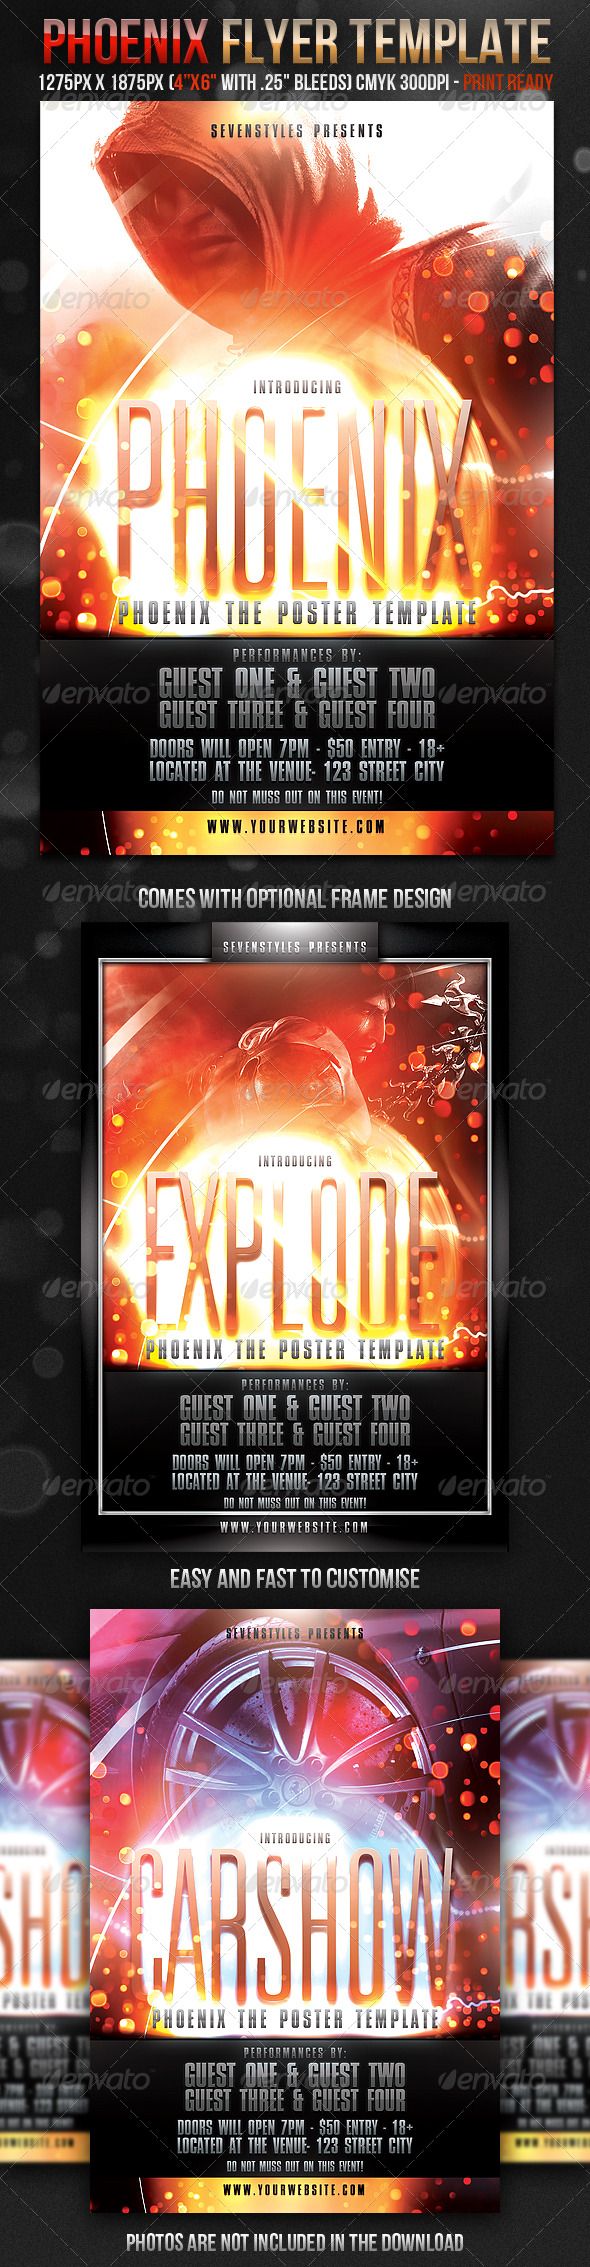 Phoenix Flyer Template - GraphicRiver Item for Sale